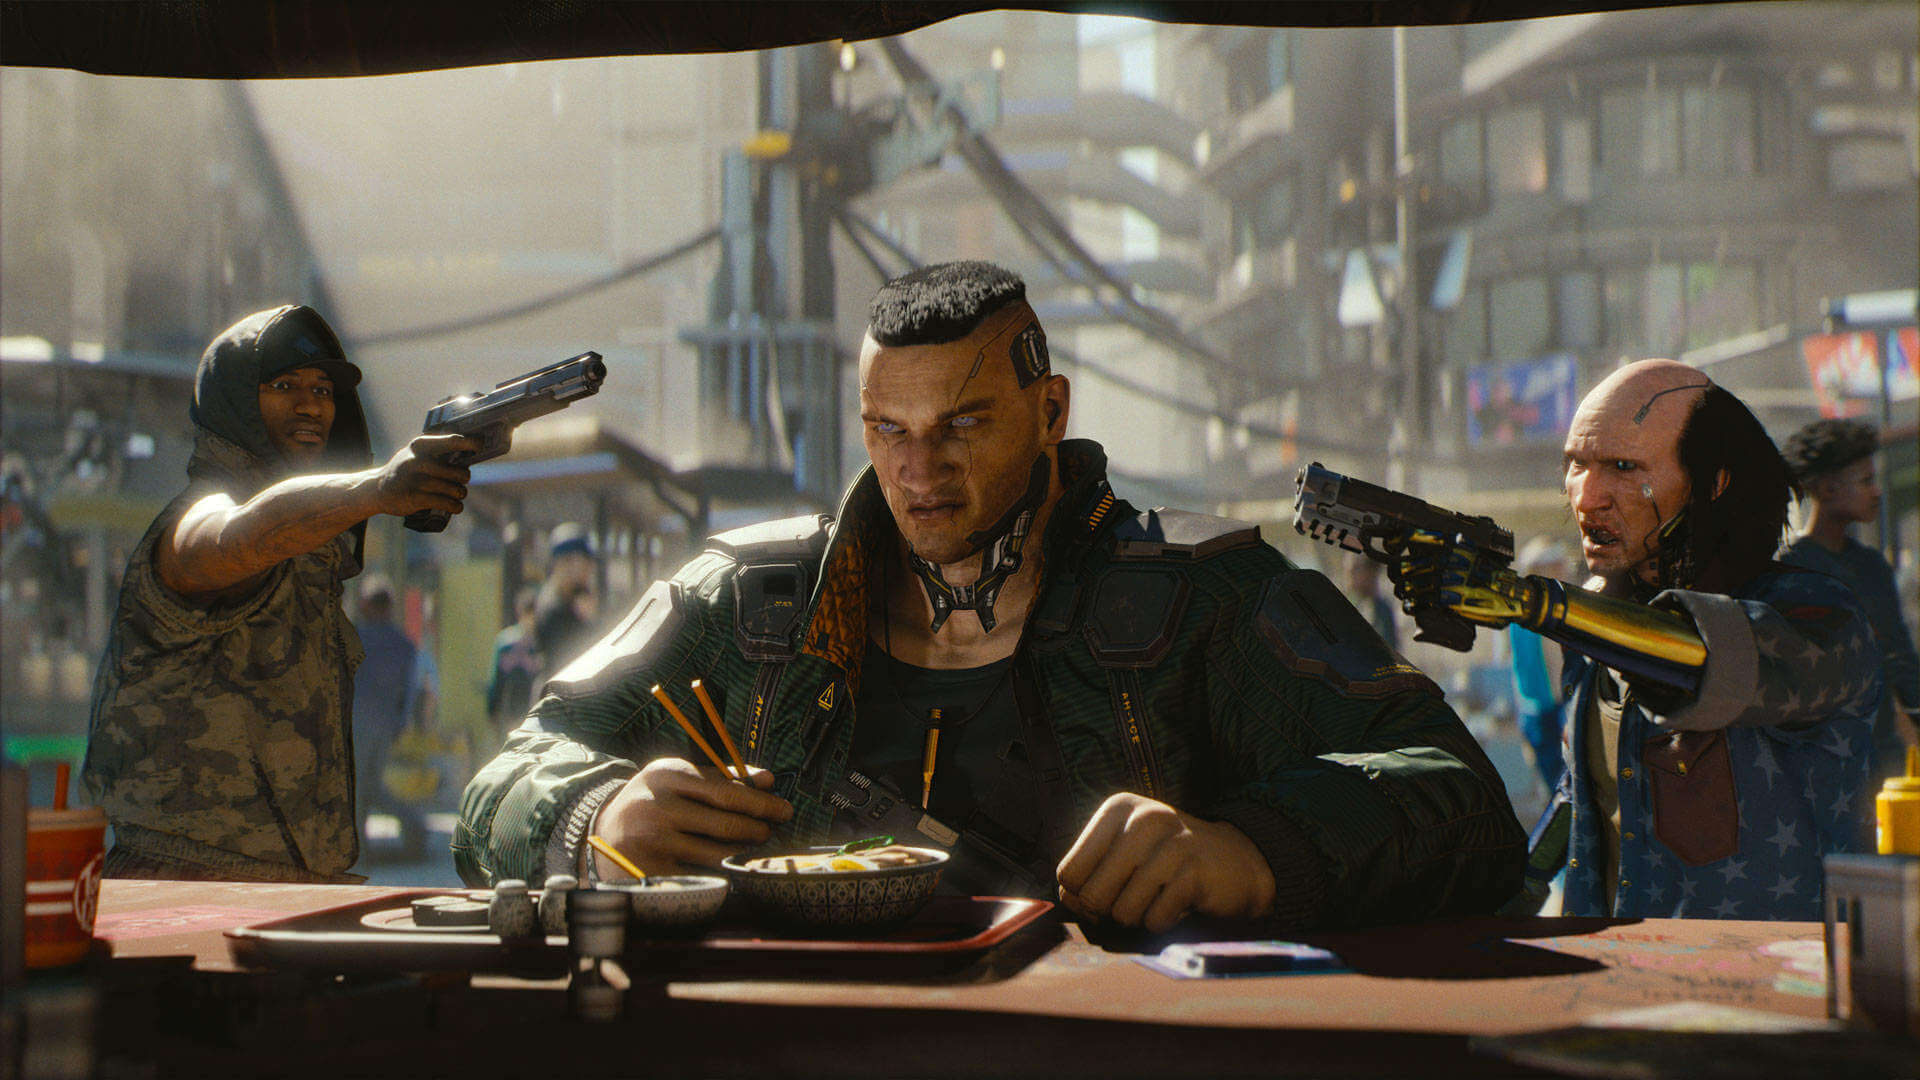 Cyberpunk 2077 Launches on Stadia November 19th